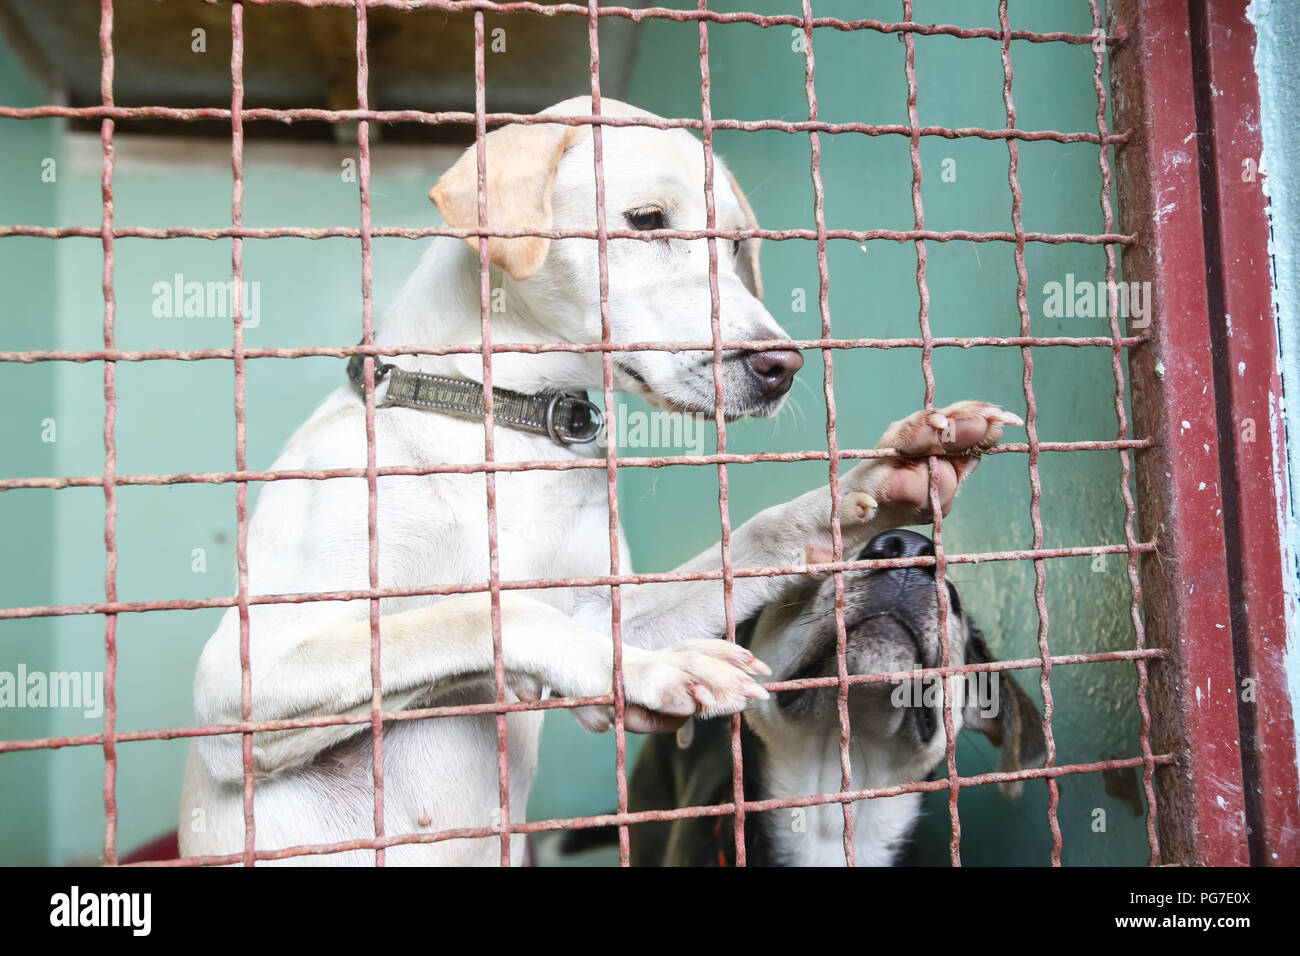 Metal Dog Cage Stock Photos & Metal Dog Cage Stock Images - Alamy